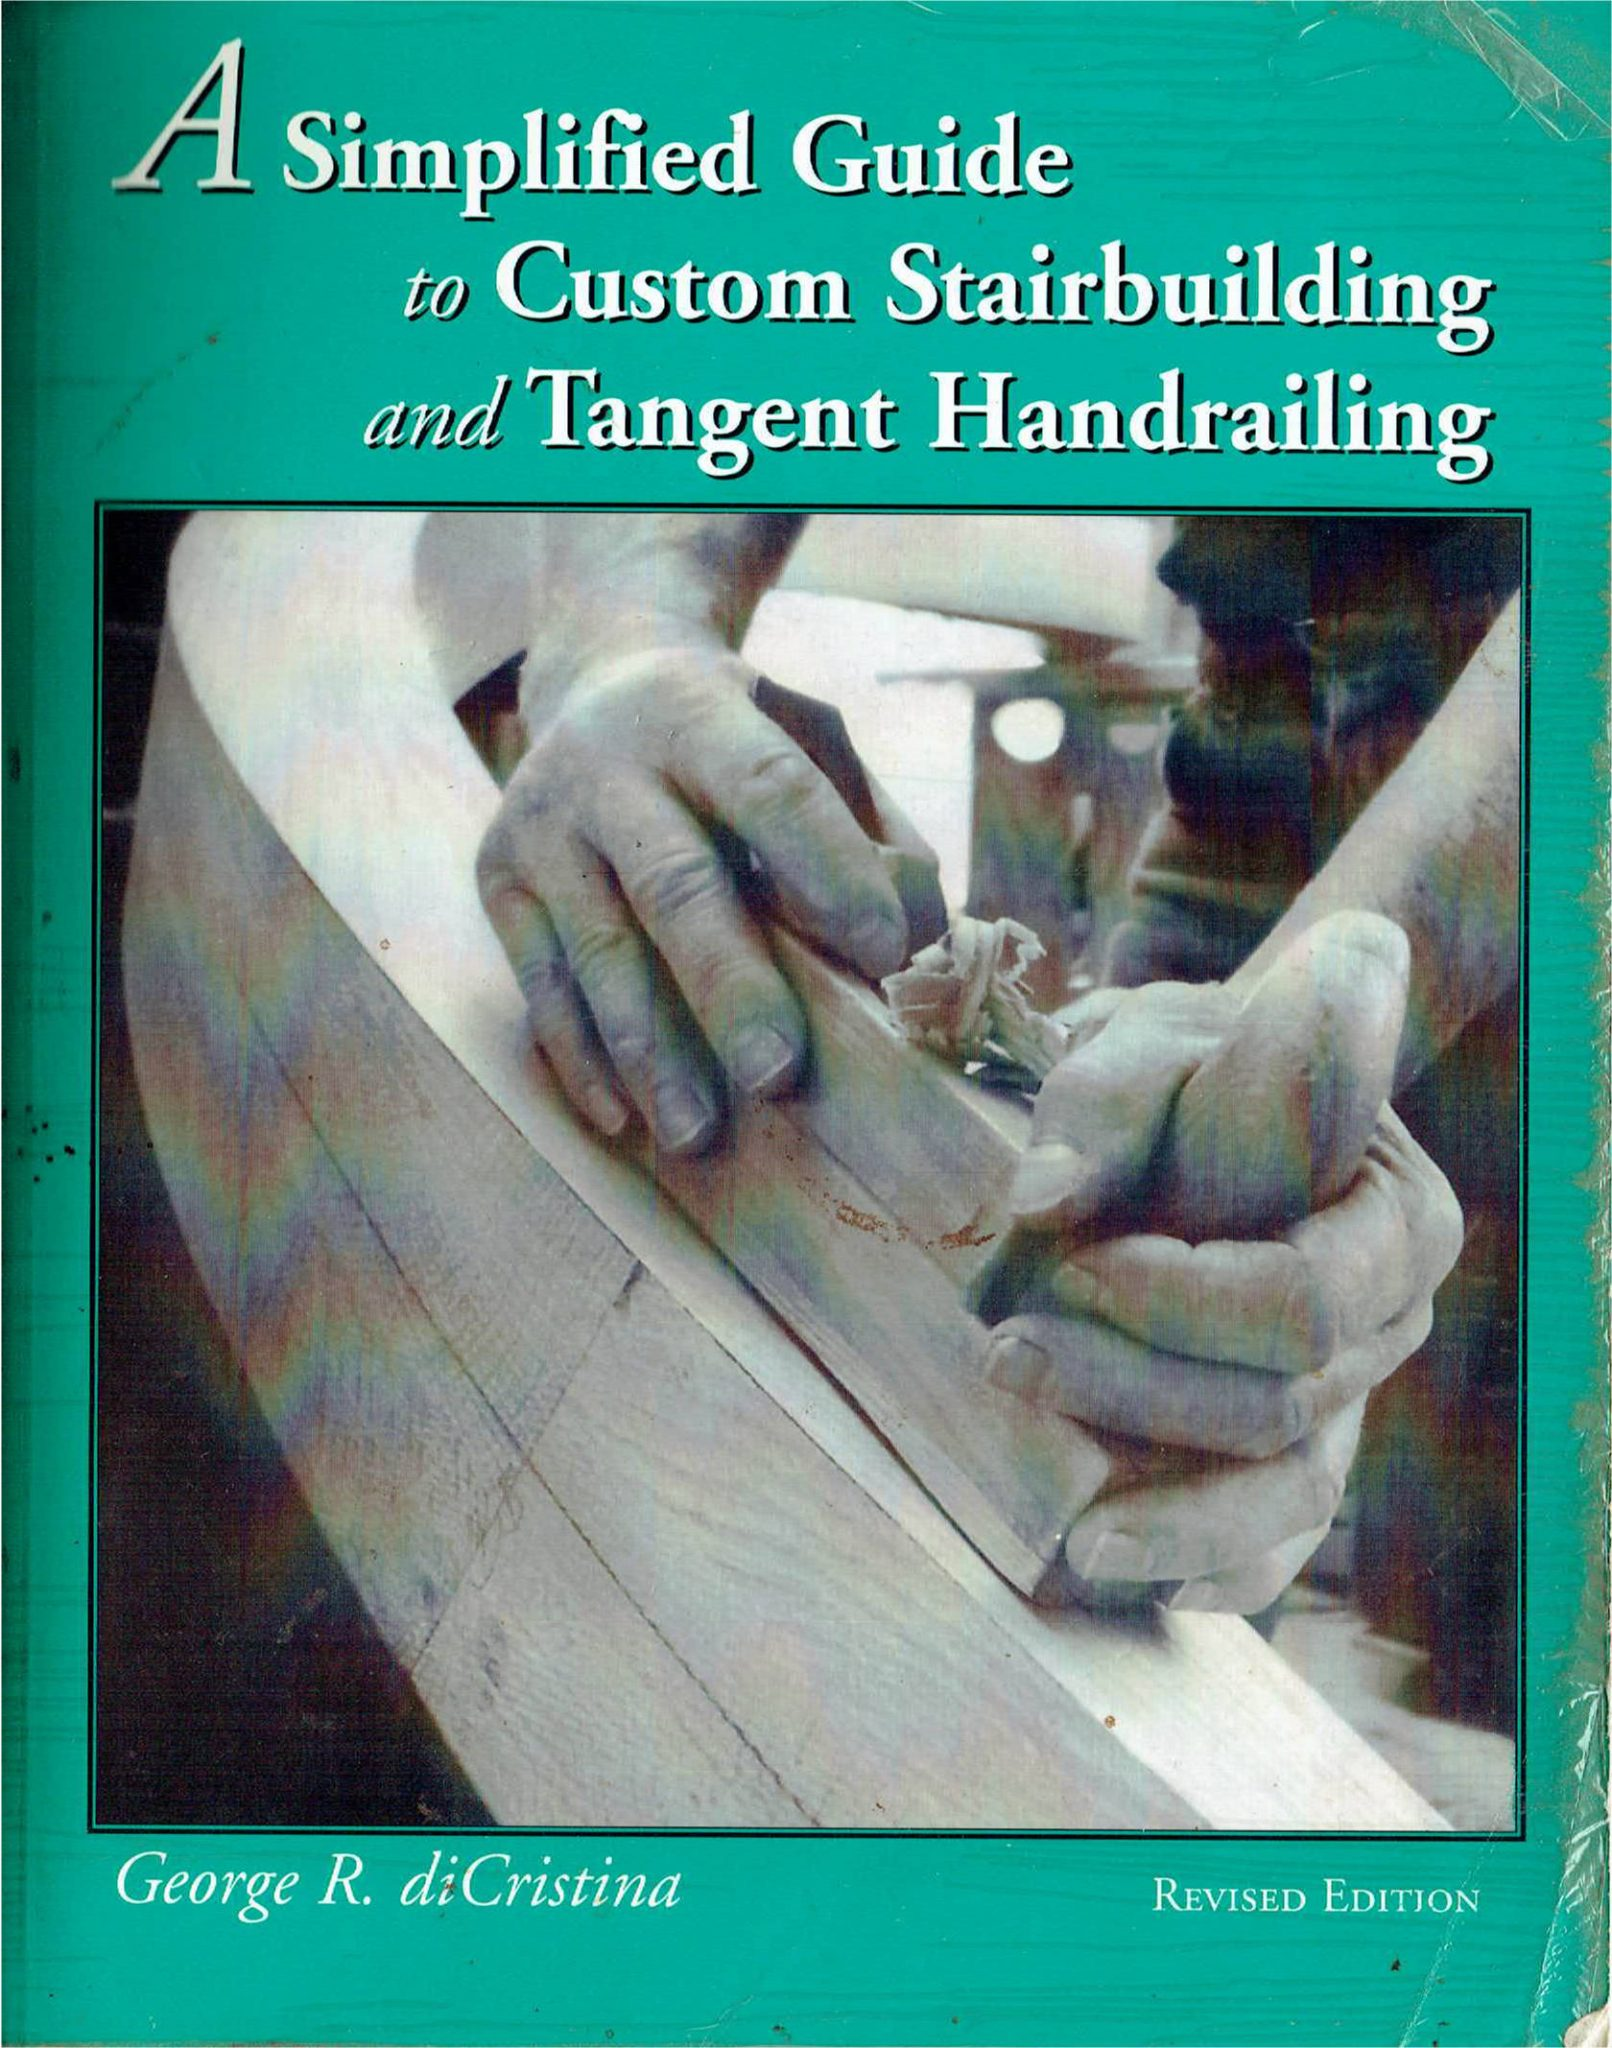 A simplified guide to custom stairbuilding and tangent handrailing.